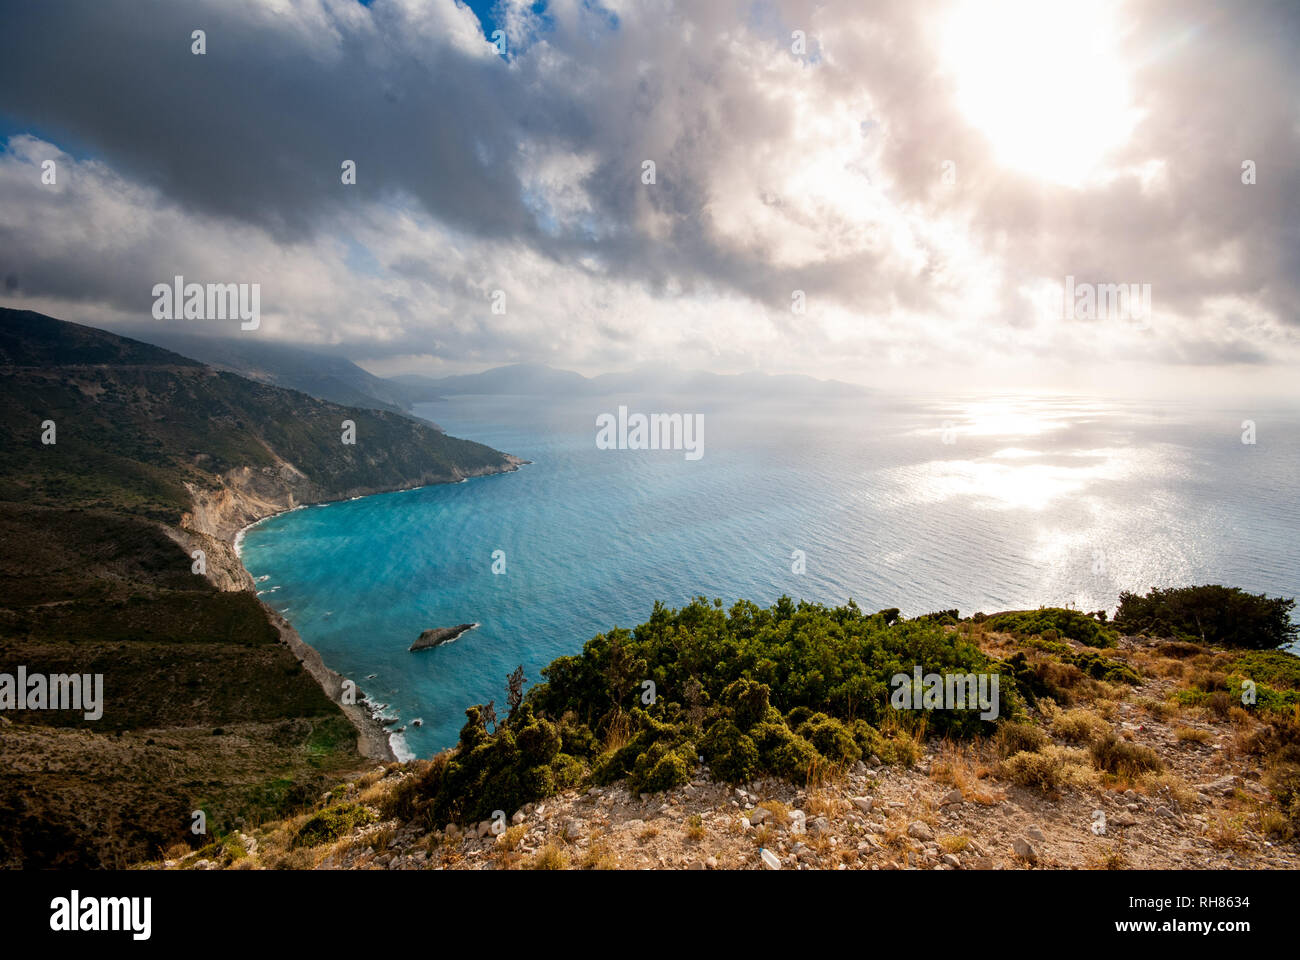 a beach in Kefalonia in the mediterranean - Stock Image